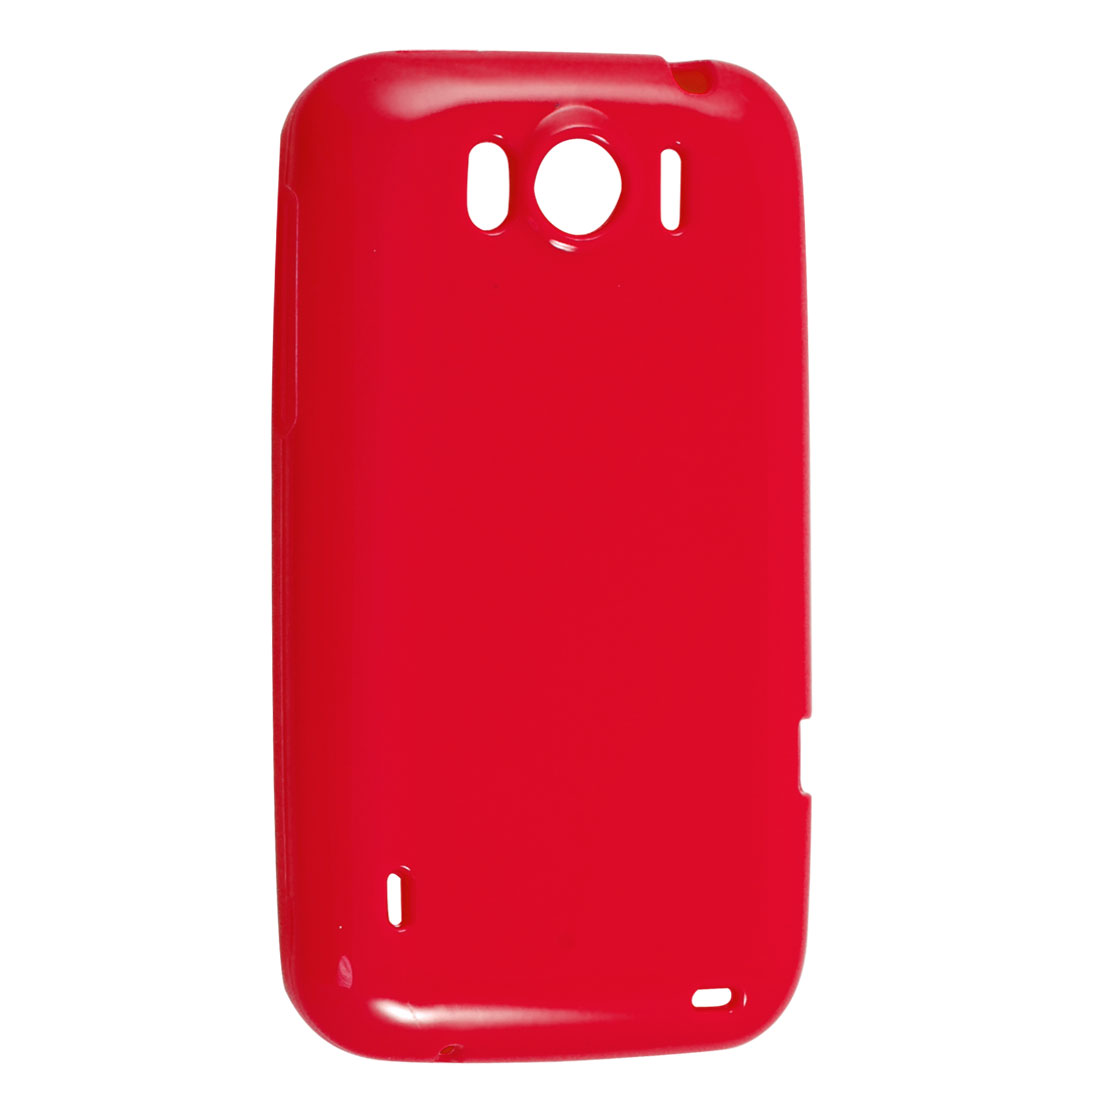 Smooth Soft Red Plastic Protector Cover for HTC Sensation XL X315E G21